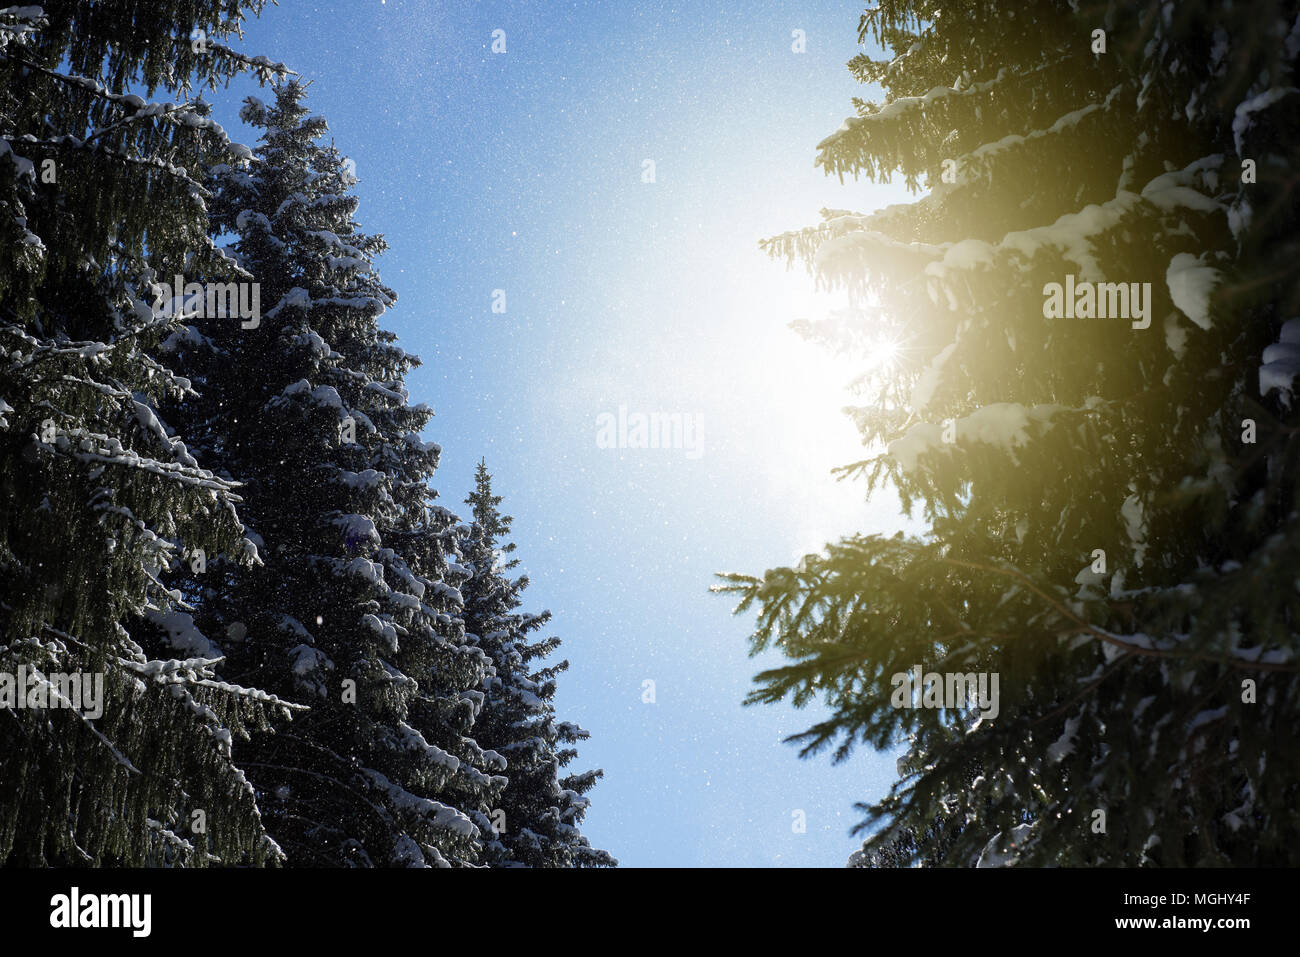 Fresh falling snow flakes fall from lush evergreen pine fir trees and are caught in the warm winter golden rays of sunlight in this wintry woodland sc Stock Photo